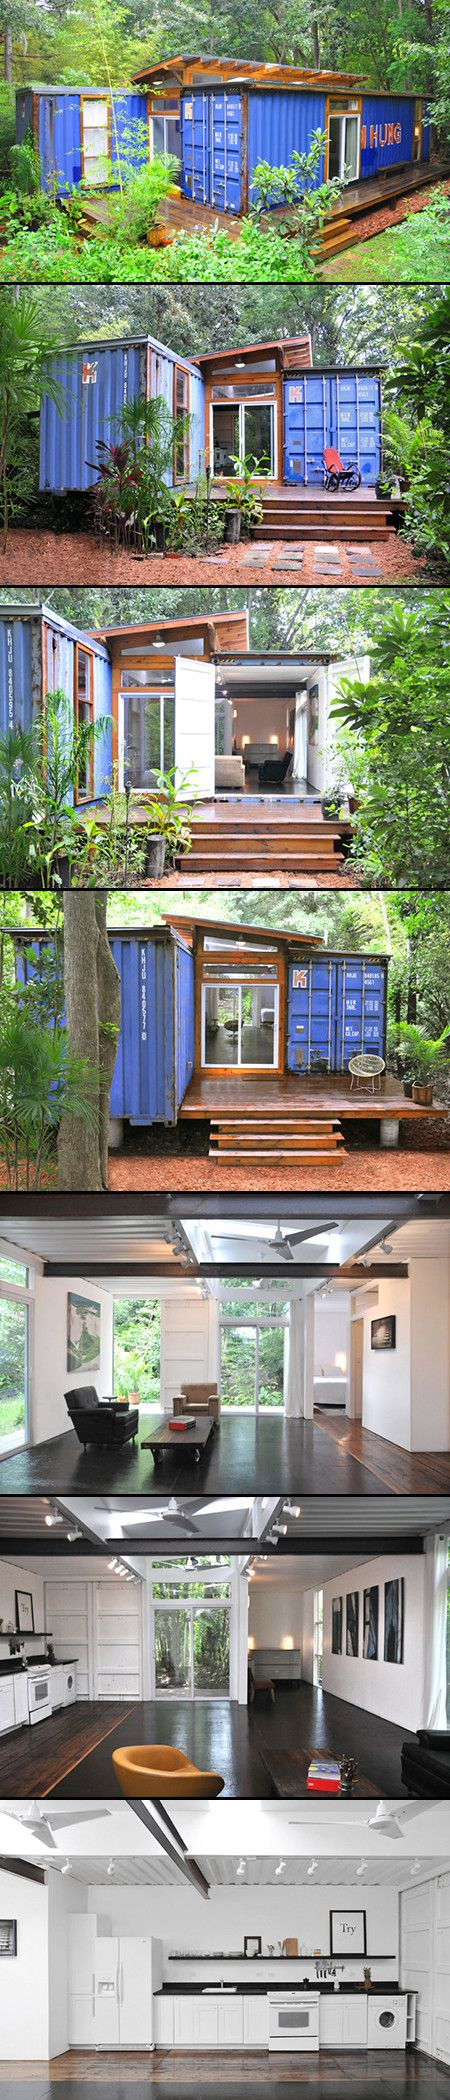 Simple easy to Build Shipping Container Home Plans. If you have been searching the Internet trying to find the BEST Detailed easy Step by Step Plans to build your Dream Shipping Container Home it doesn't get any easier than these. (60 Day Return)